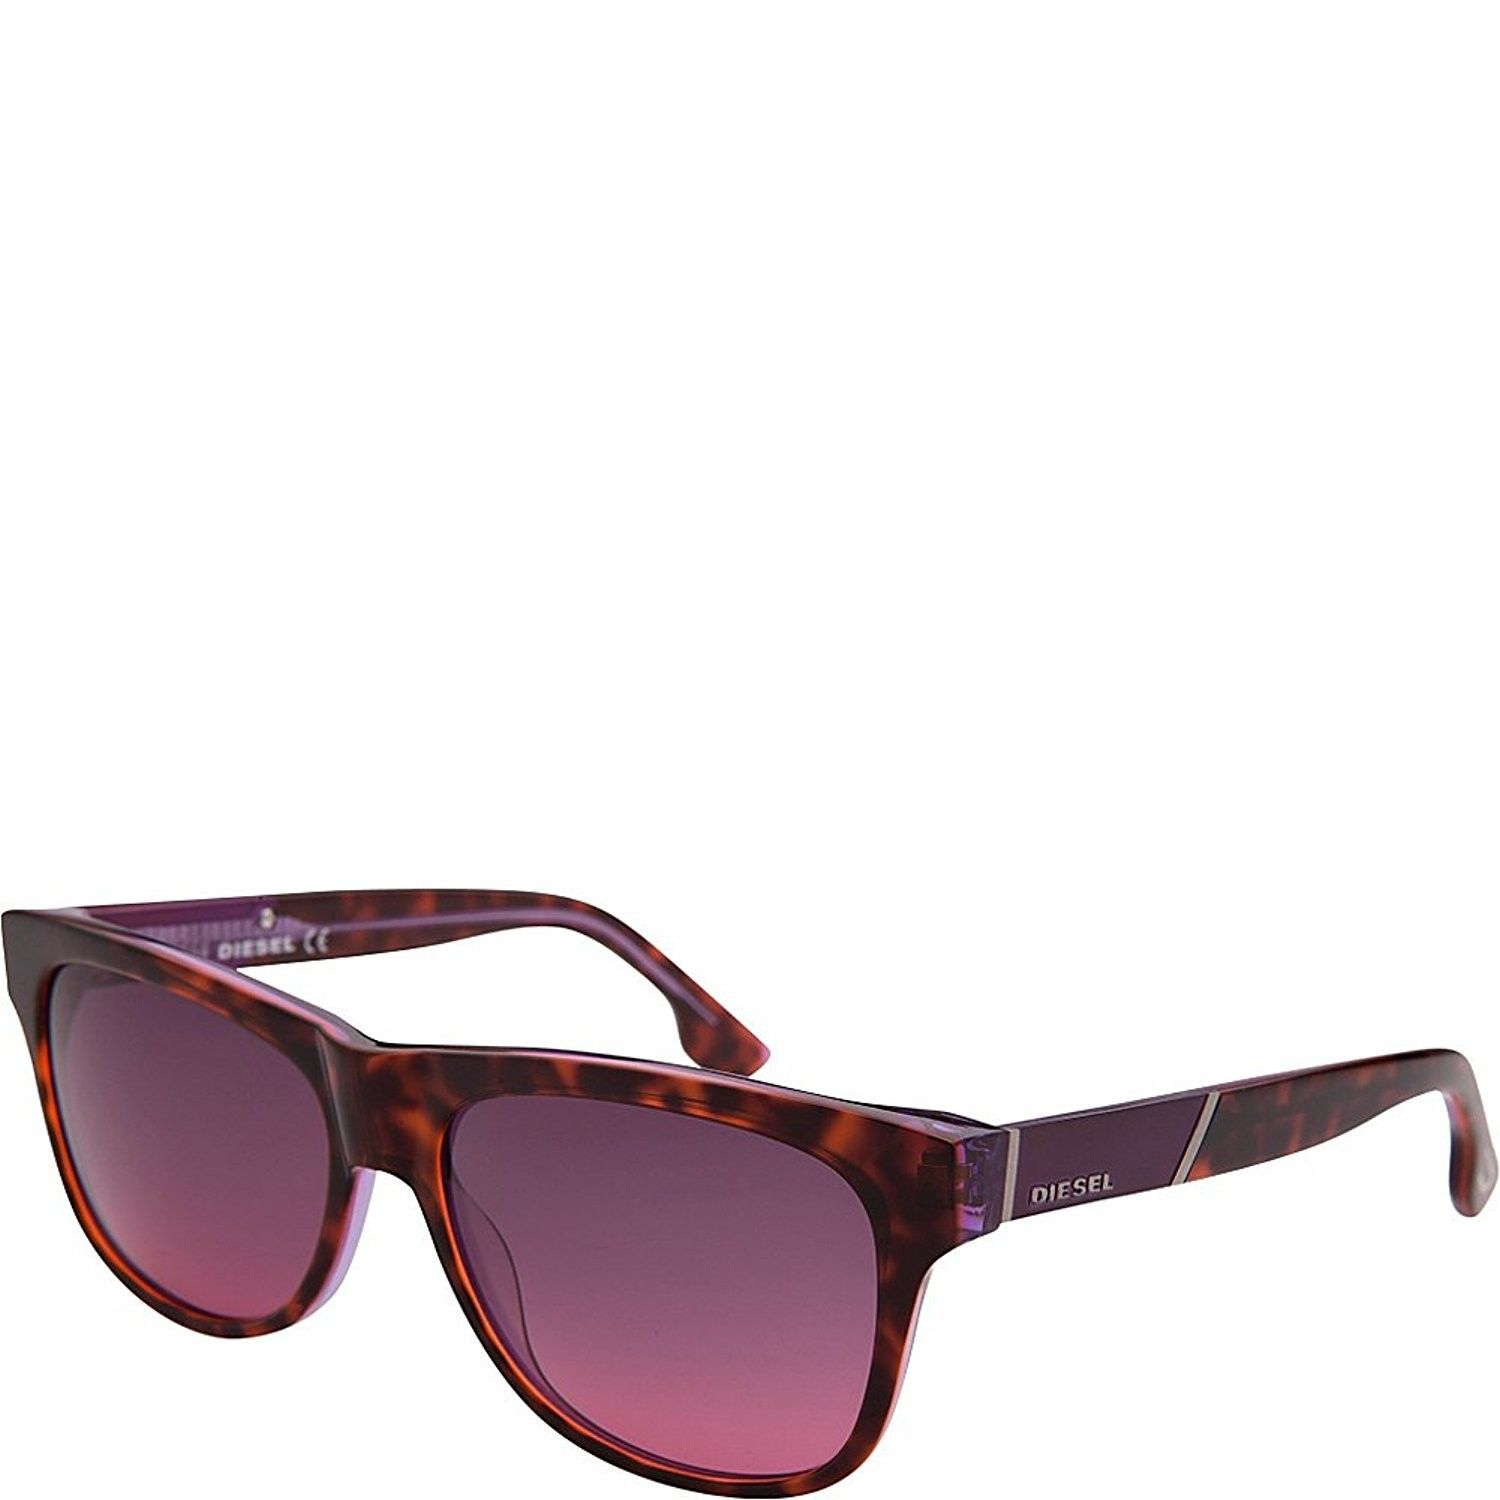 24483f4902 Unisex DL0085 55B Square Sunglasses Tortoise Purple 57mm - CS11GA6CWK5 -  Men s Sunglasses